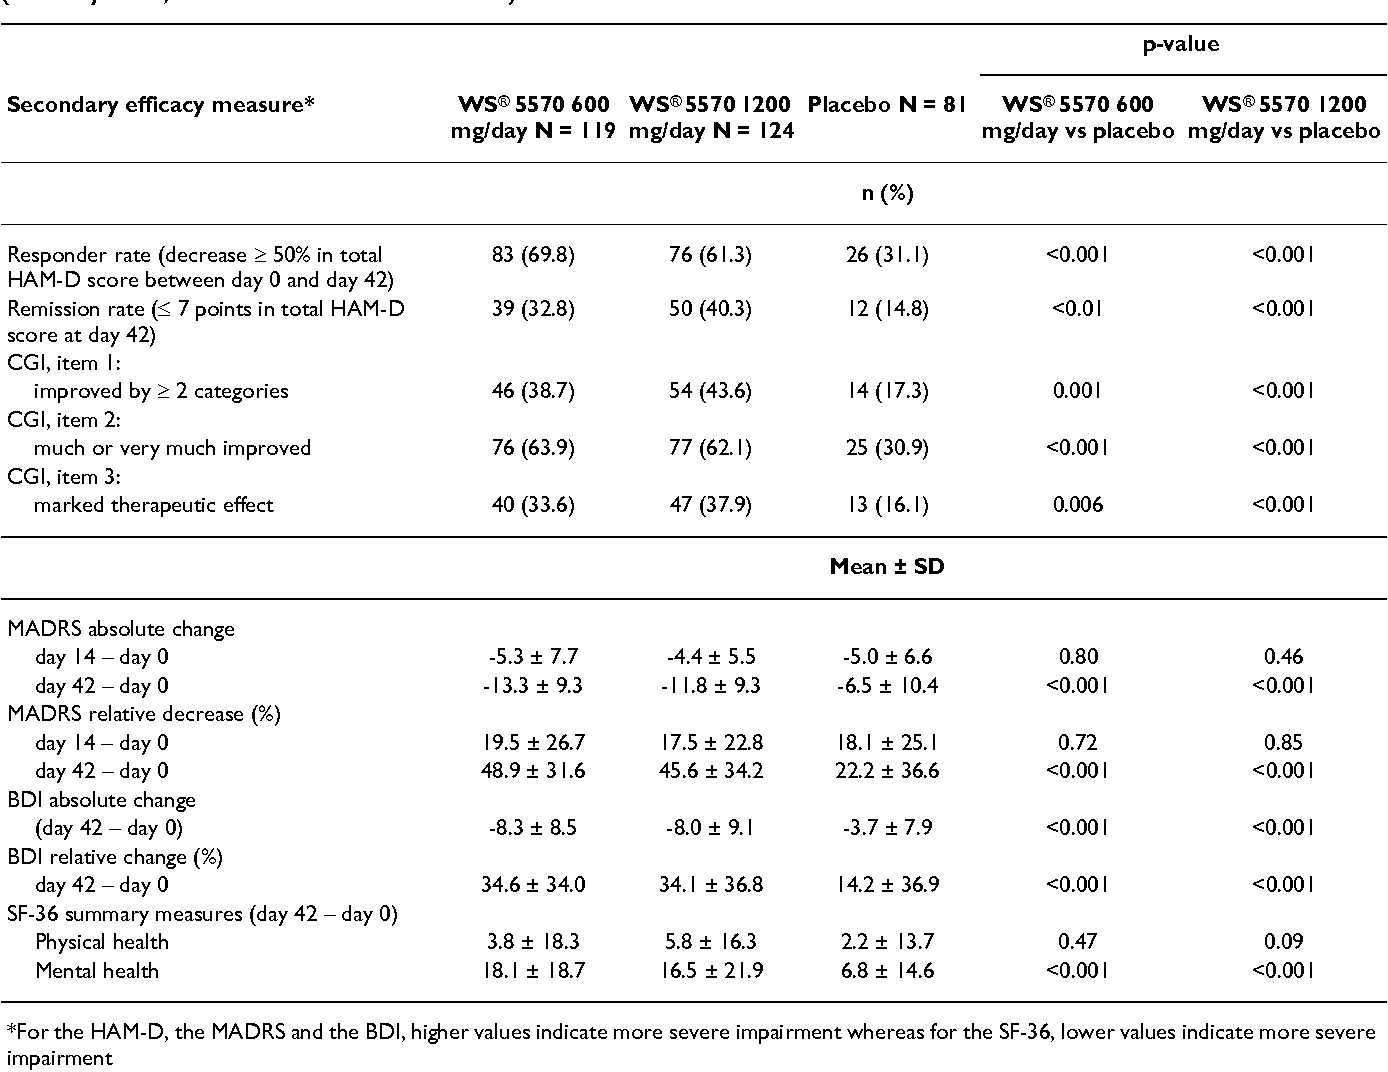 Table 4: Secondary efficacy measures for patients with a major depressive episode treated over 6-weeks with WS® 5570 or placebo (full analysis set, last observation carried forward)